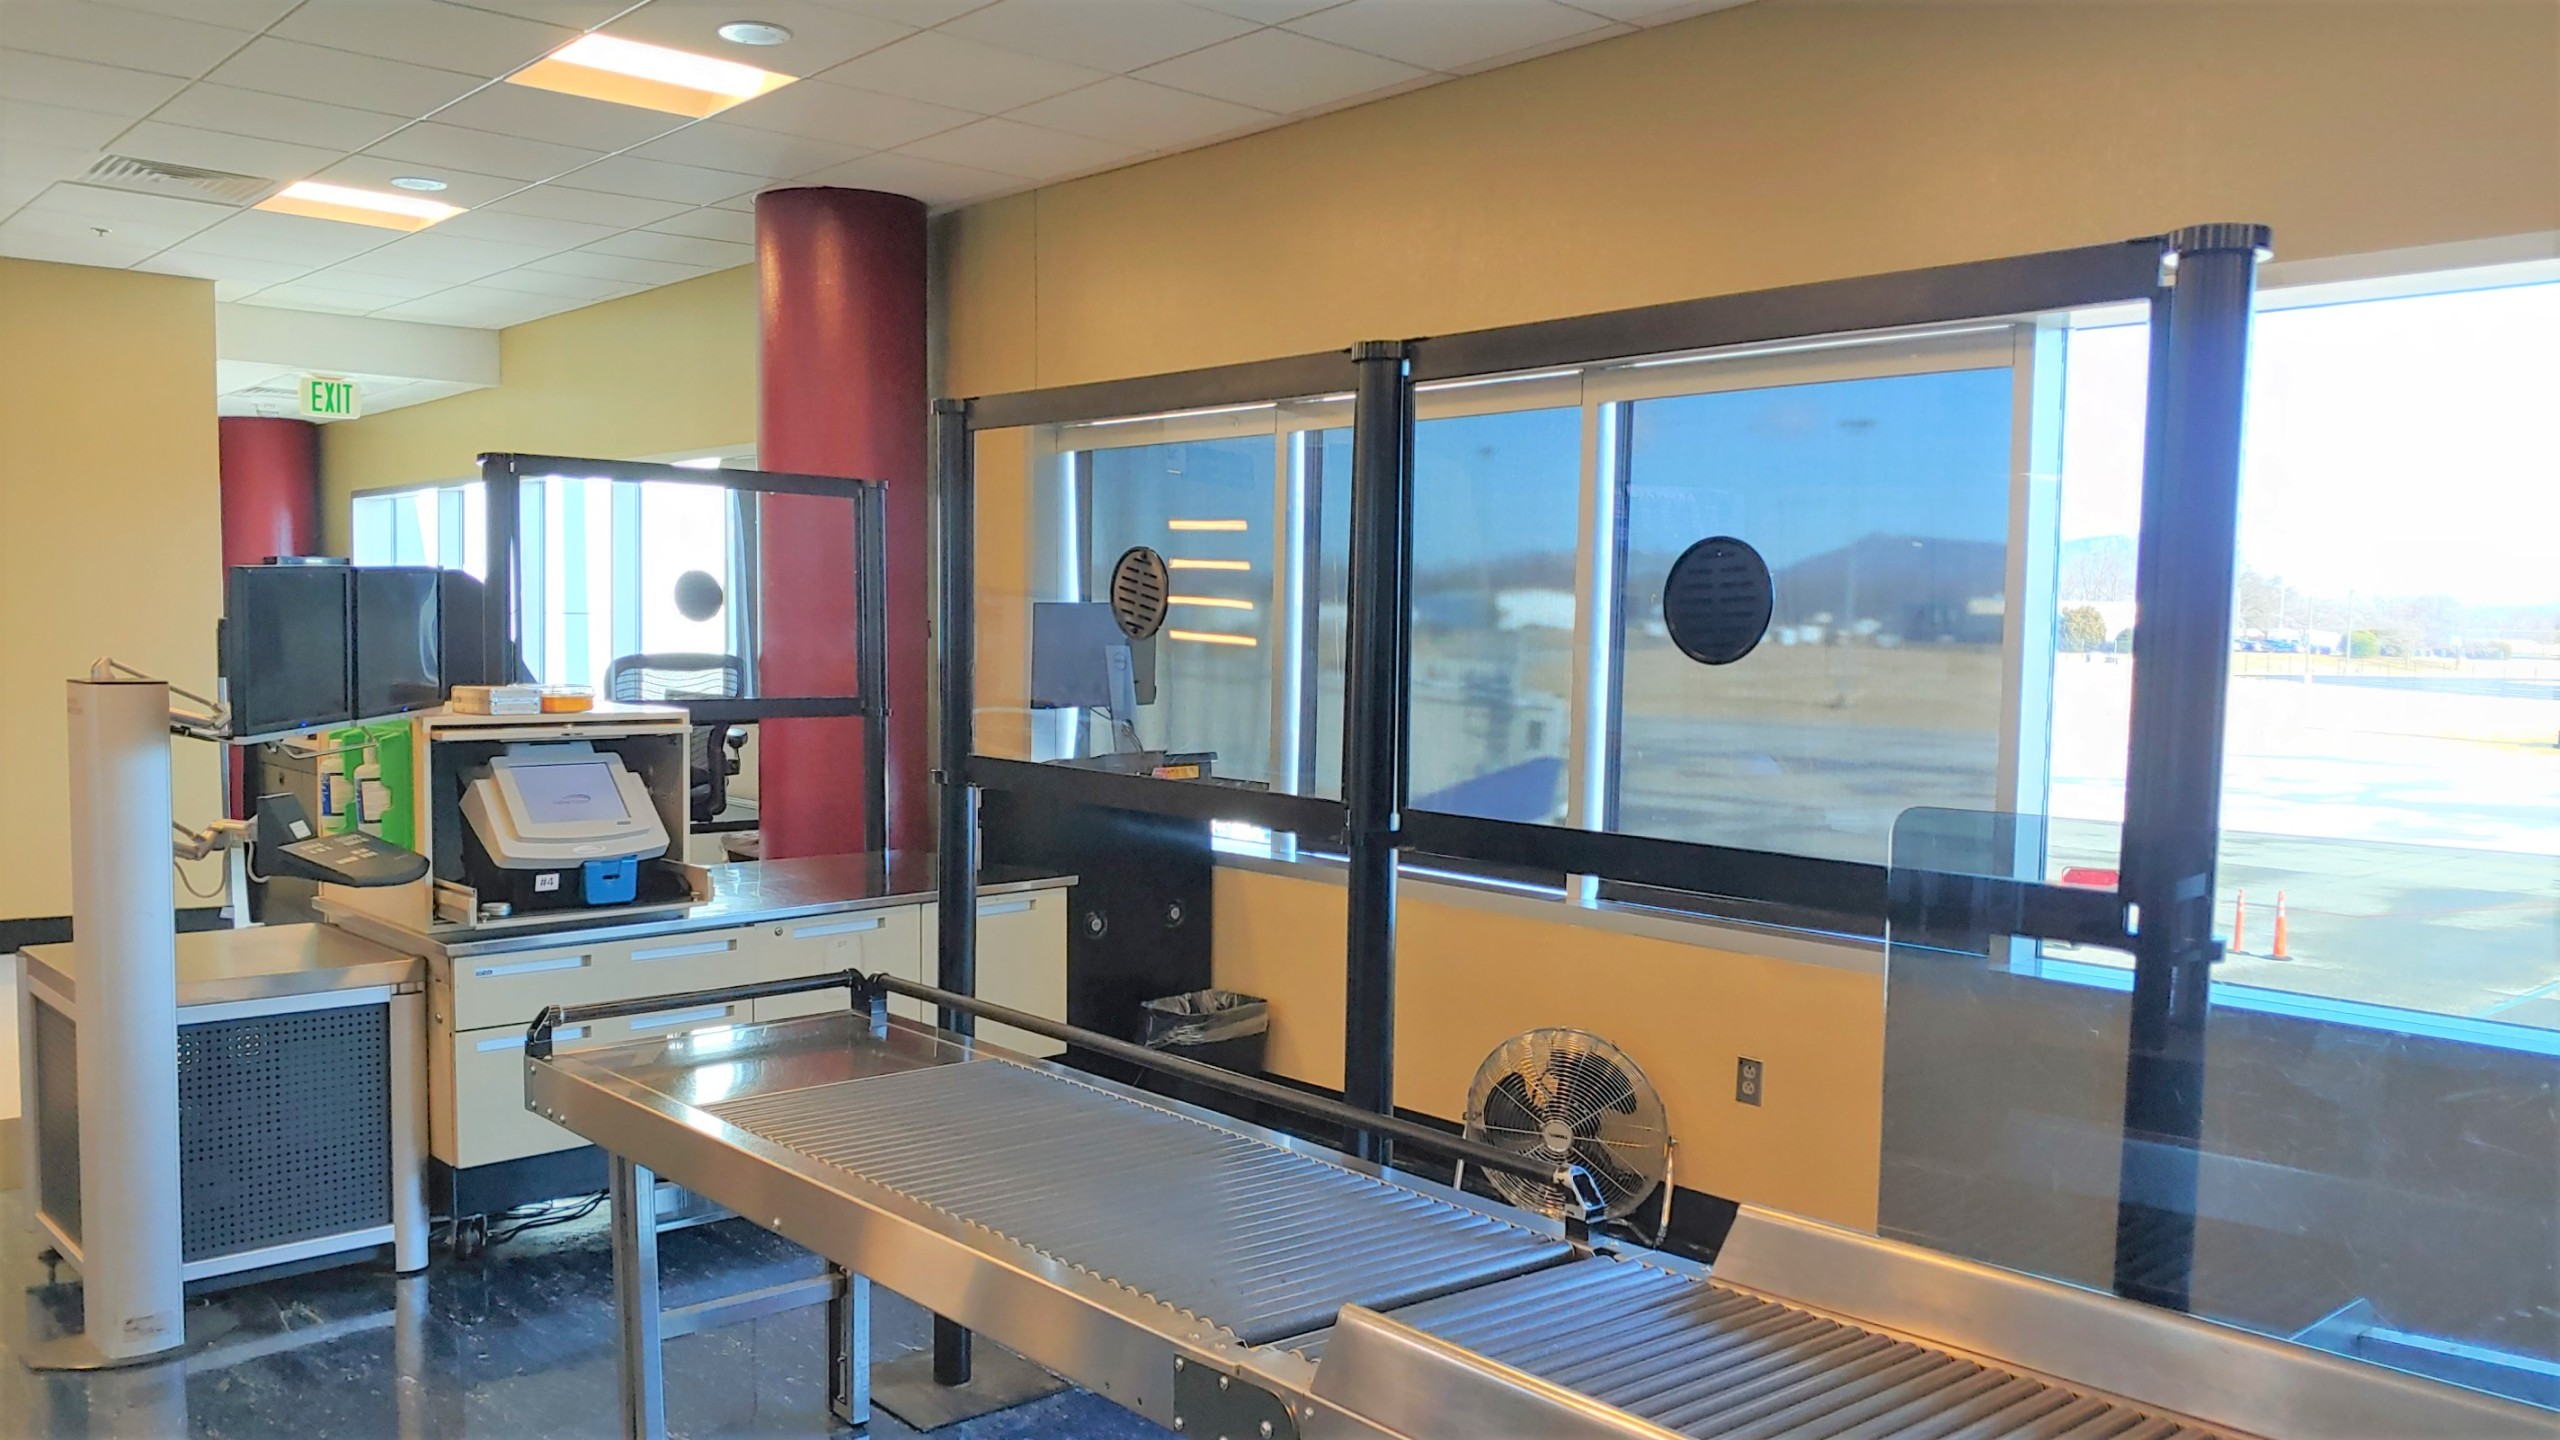 Acrylic barriers have been installed at the TSA checkpoint at Roanoke-Blacksburg Regional Airport to help protect the workforce and passengers. (Photo: Courtesy TSA)